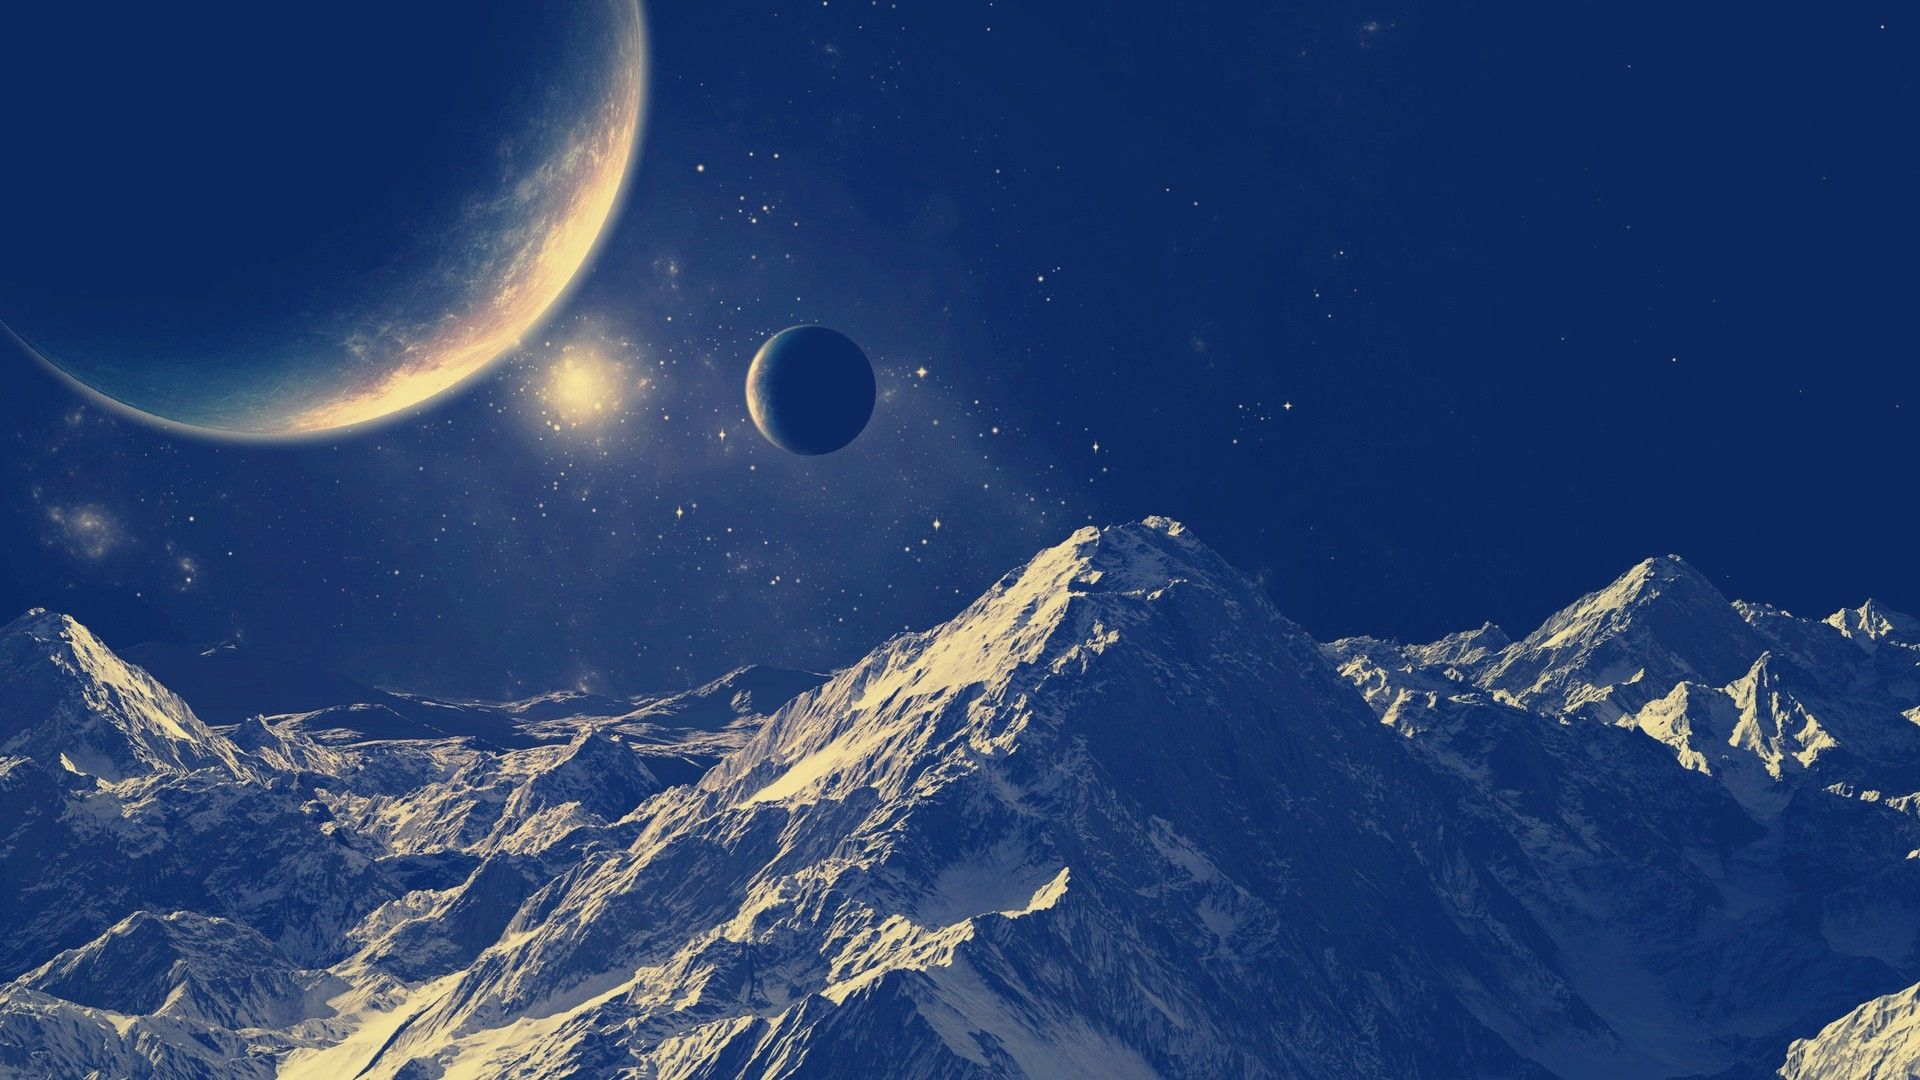 Space Themed wallpaper image